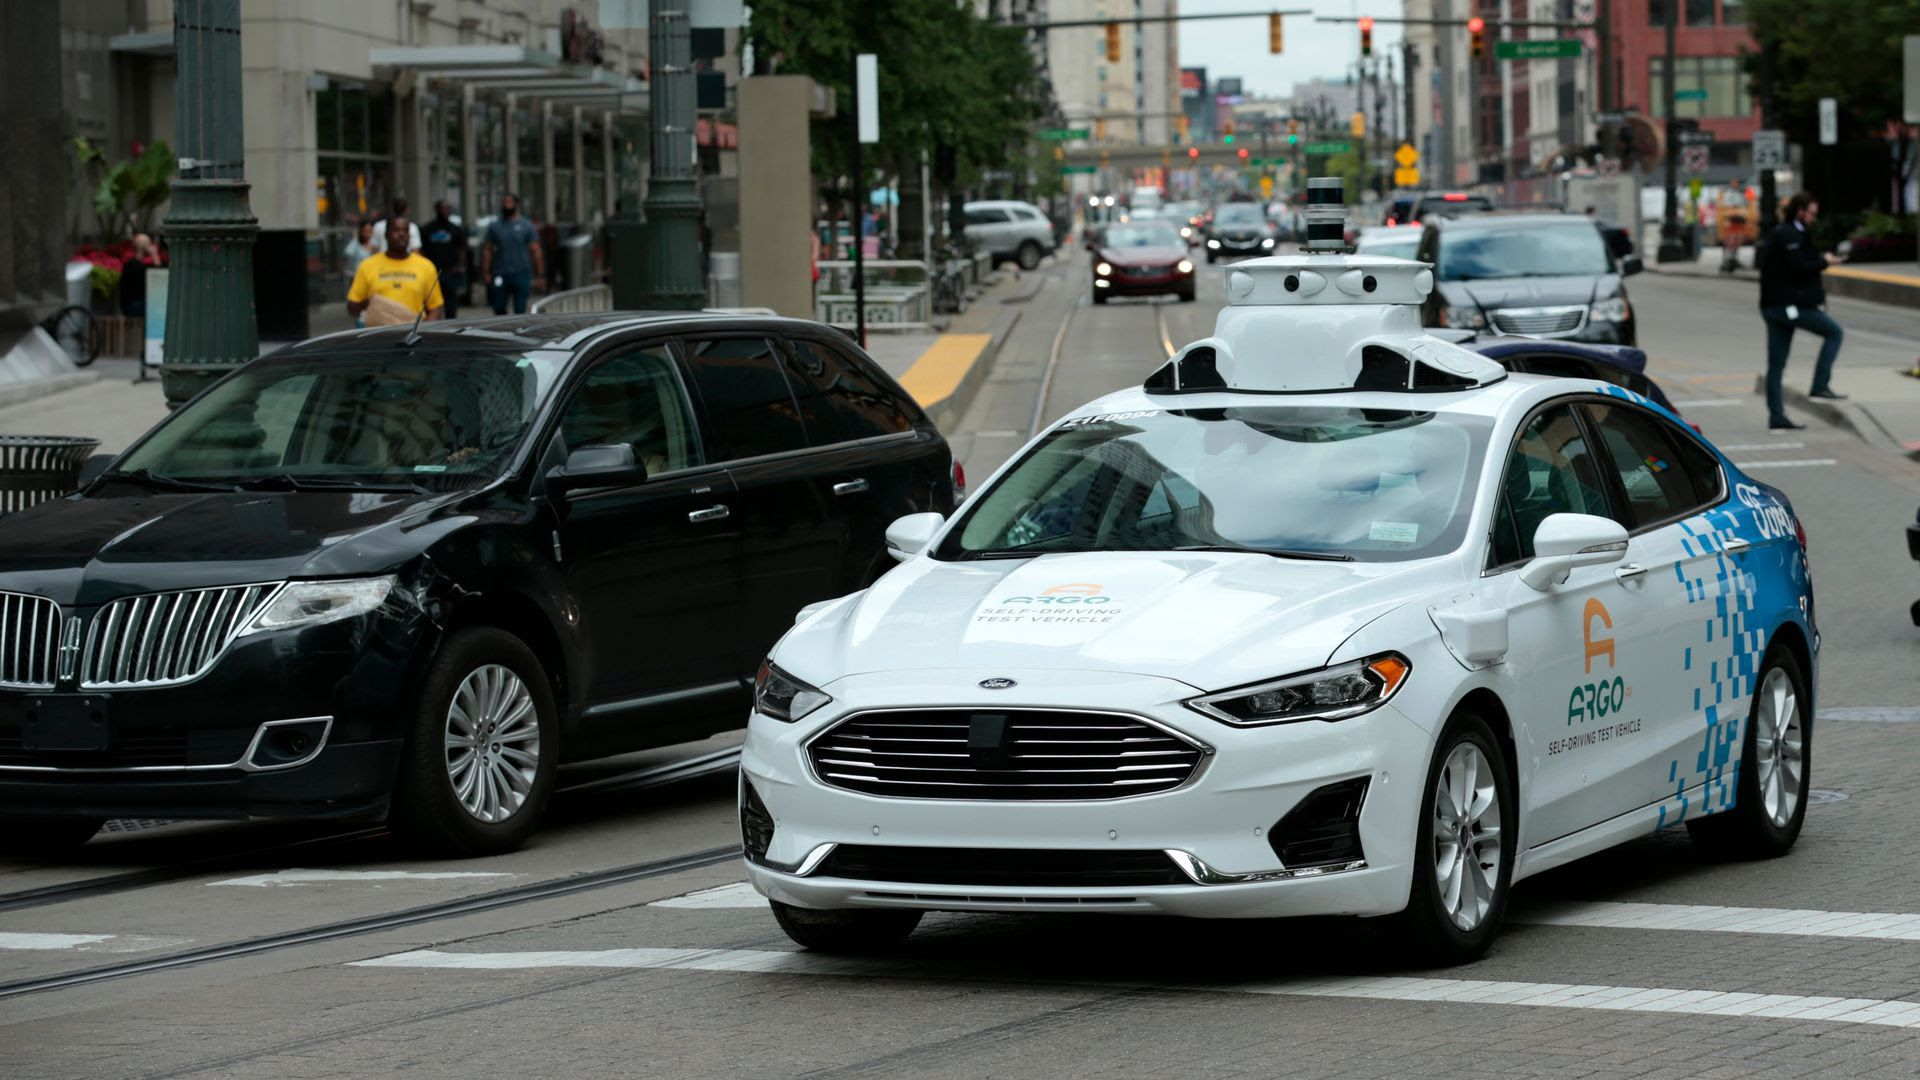 A Ford Argo AI test vehicle being tested in downtown Detroit